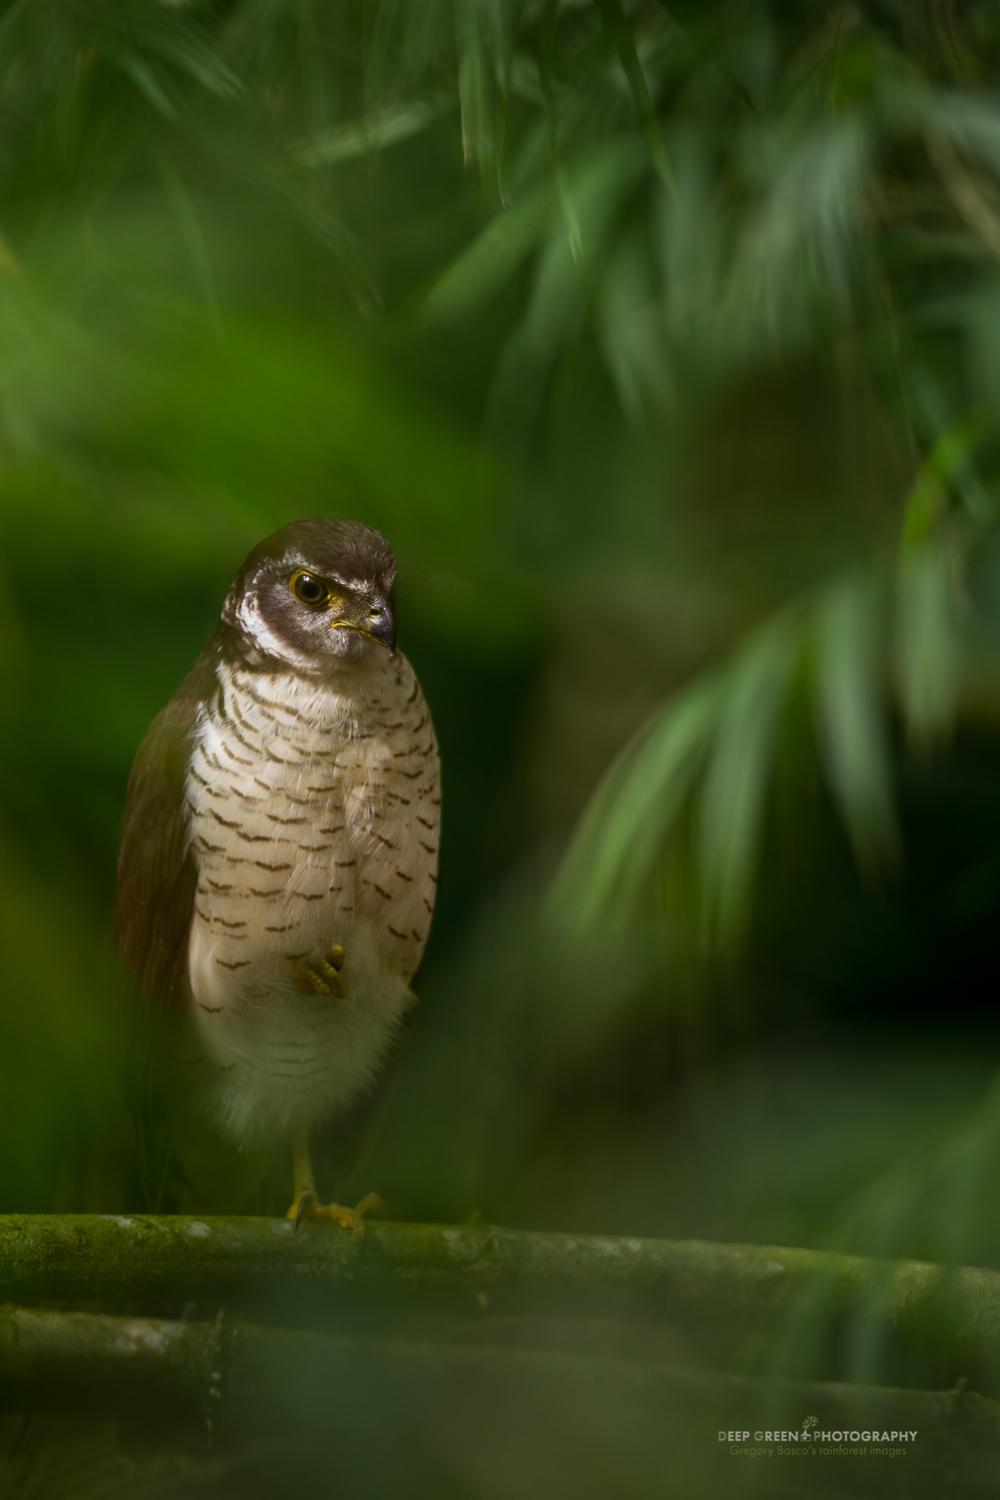 Forest Falcon This was one of those encounters that makes bird photography, and nature photography in general, so fun. My friend Doug Brown and I came upon this juvenile barred forest falcon following an army ant swarm in the cloud forest. The shooting was tough as it was late morning direct sunlight. In addition, this area of the forest was light gap that was overgrown with a bamboo thicket, meaning our views of the bird were obstructed. Plus we were getting stung by army ants. But we persisted, and I was lucky to find a window to shoot through. I waited until a cloud floated past the sun and was rewarded with a shot that I think gives more of a sense of the barred forest falcon than any standard clean view would.